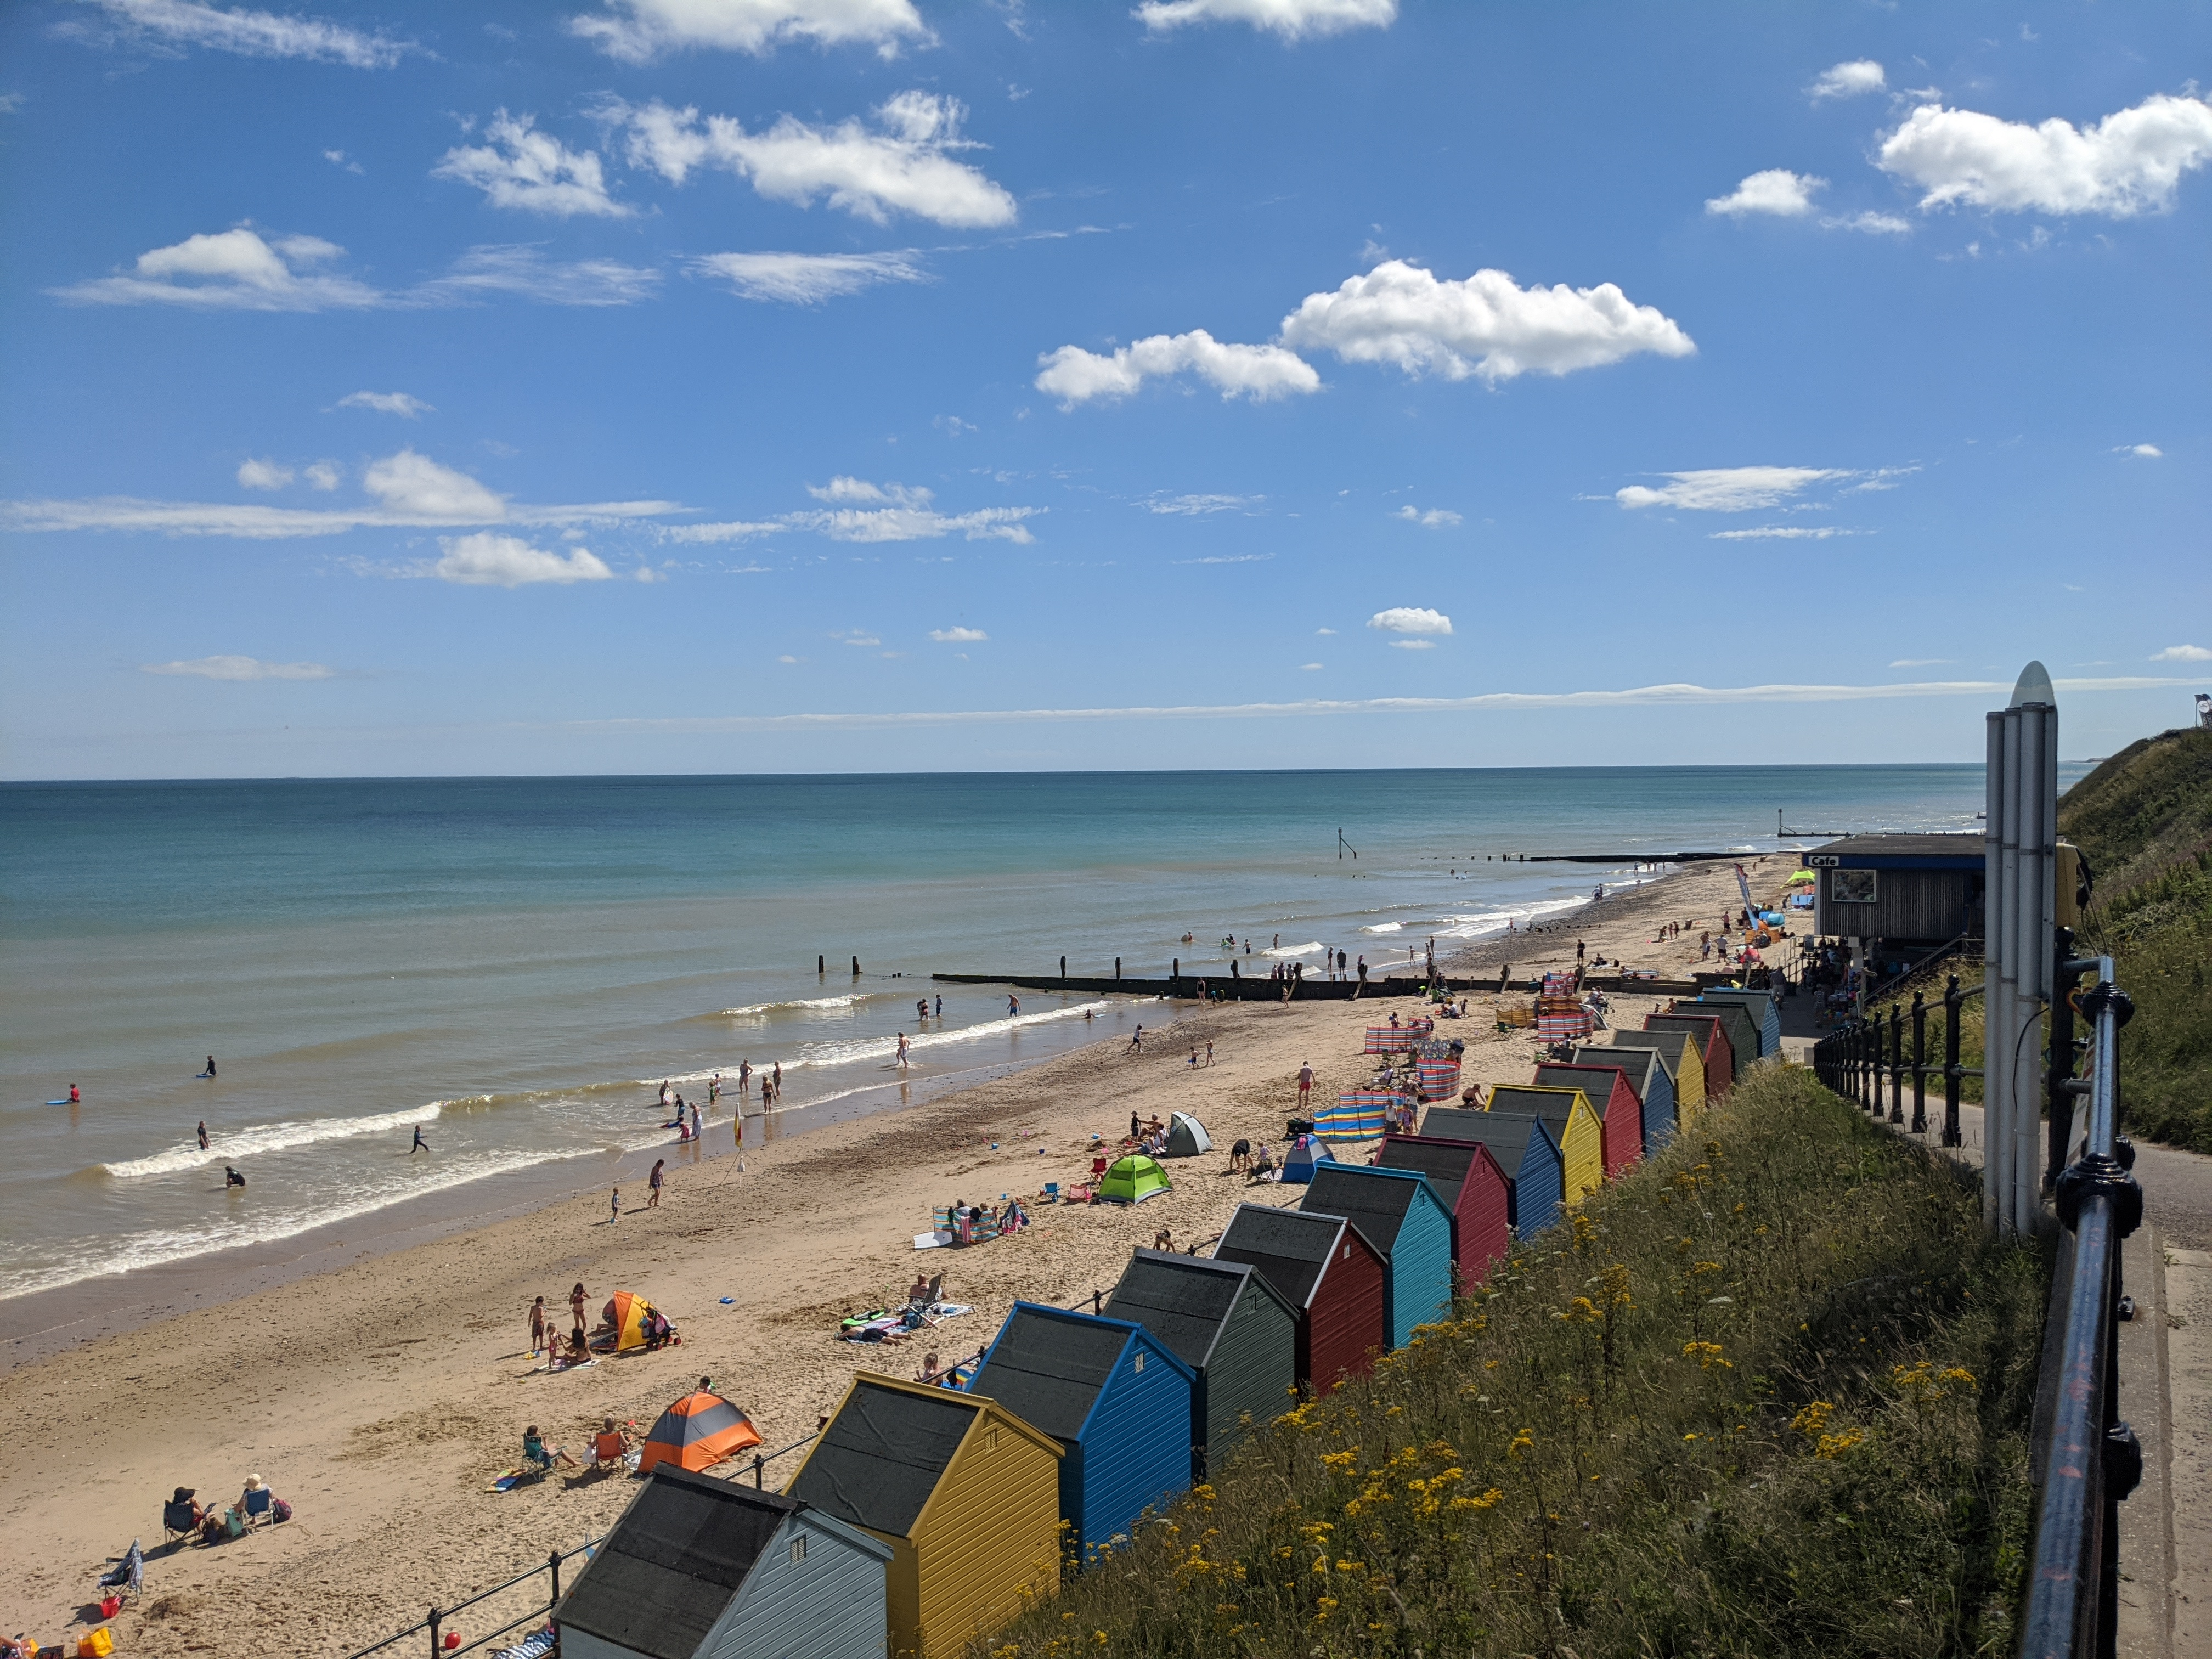 Seaside at Mundesley